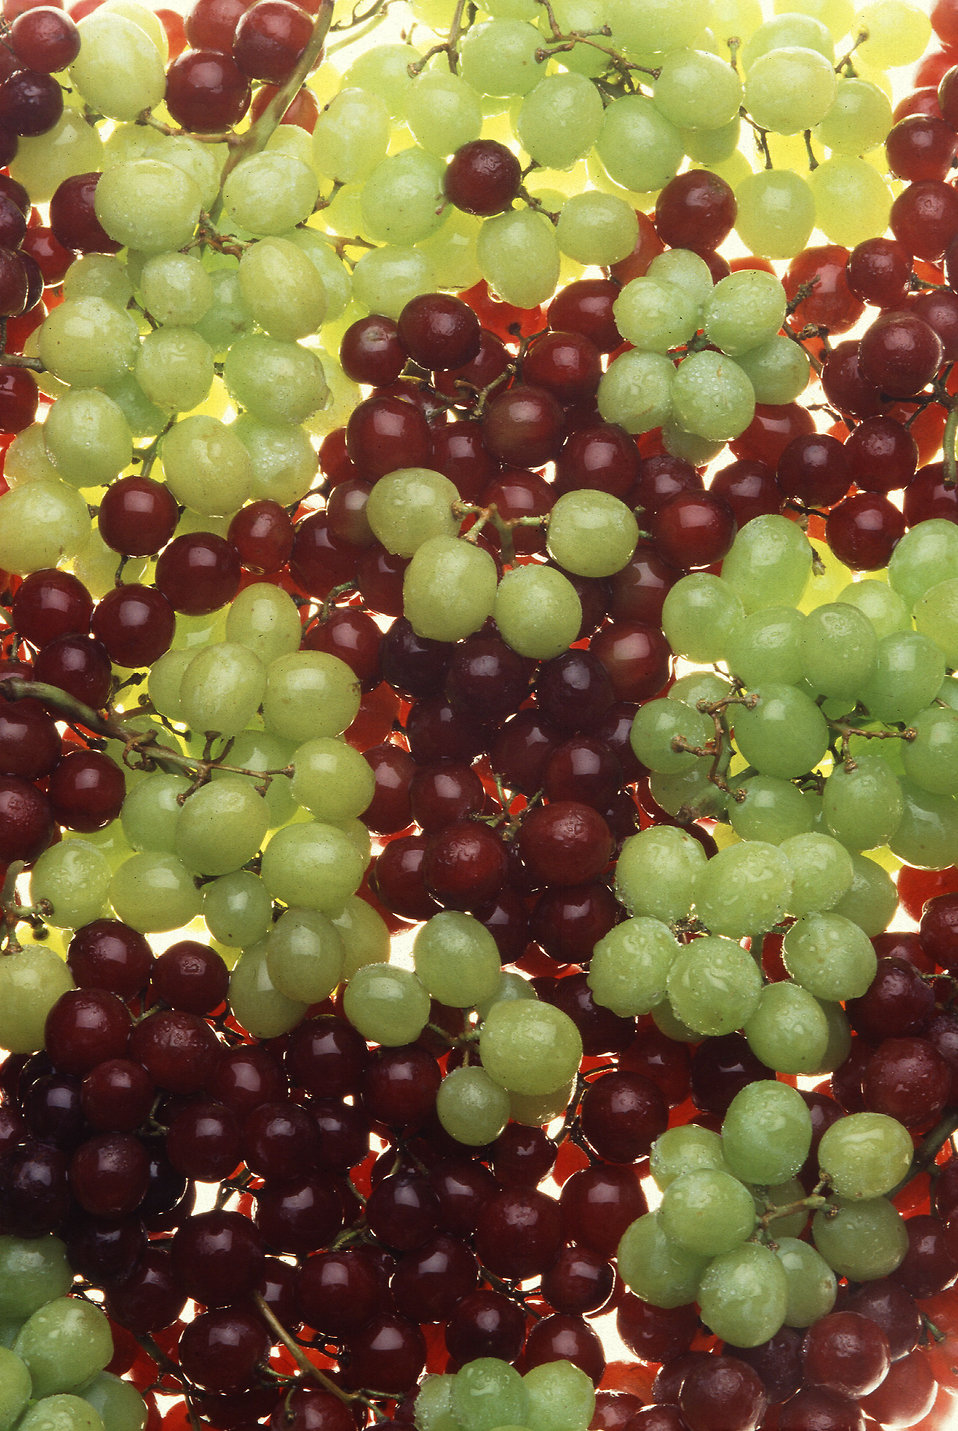 Bunches of green and red grapes : Free Stock Photo